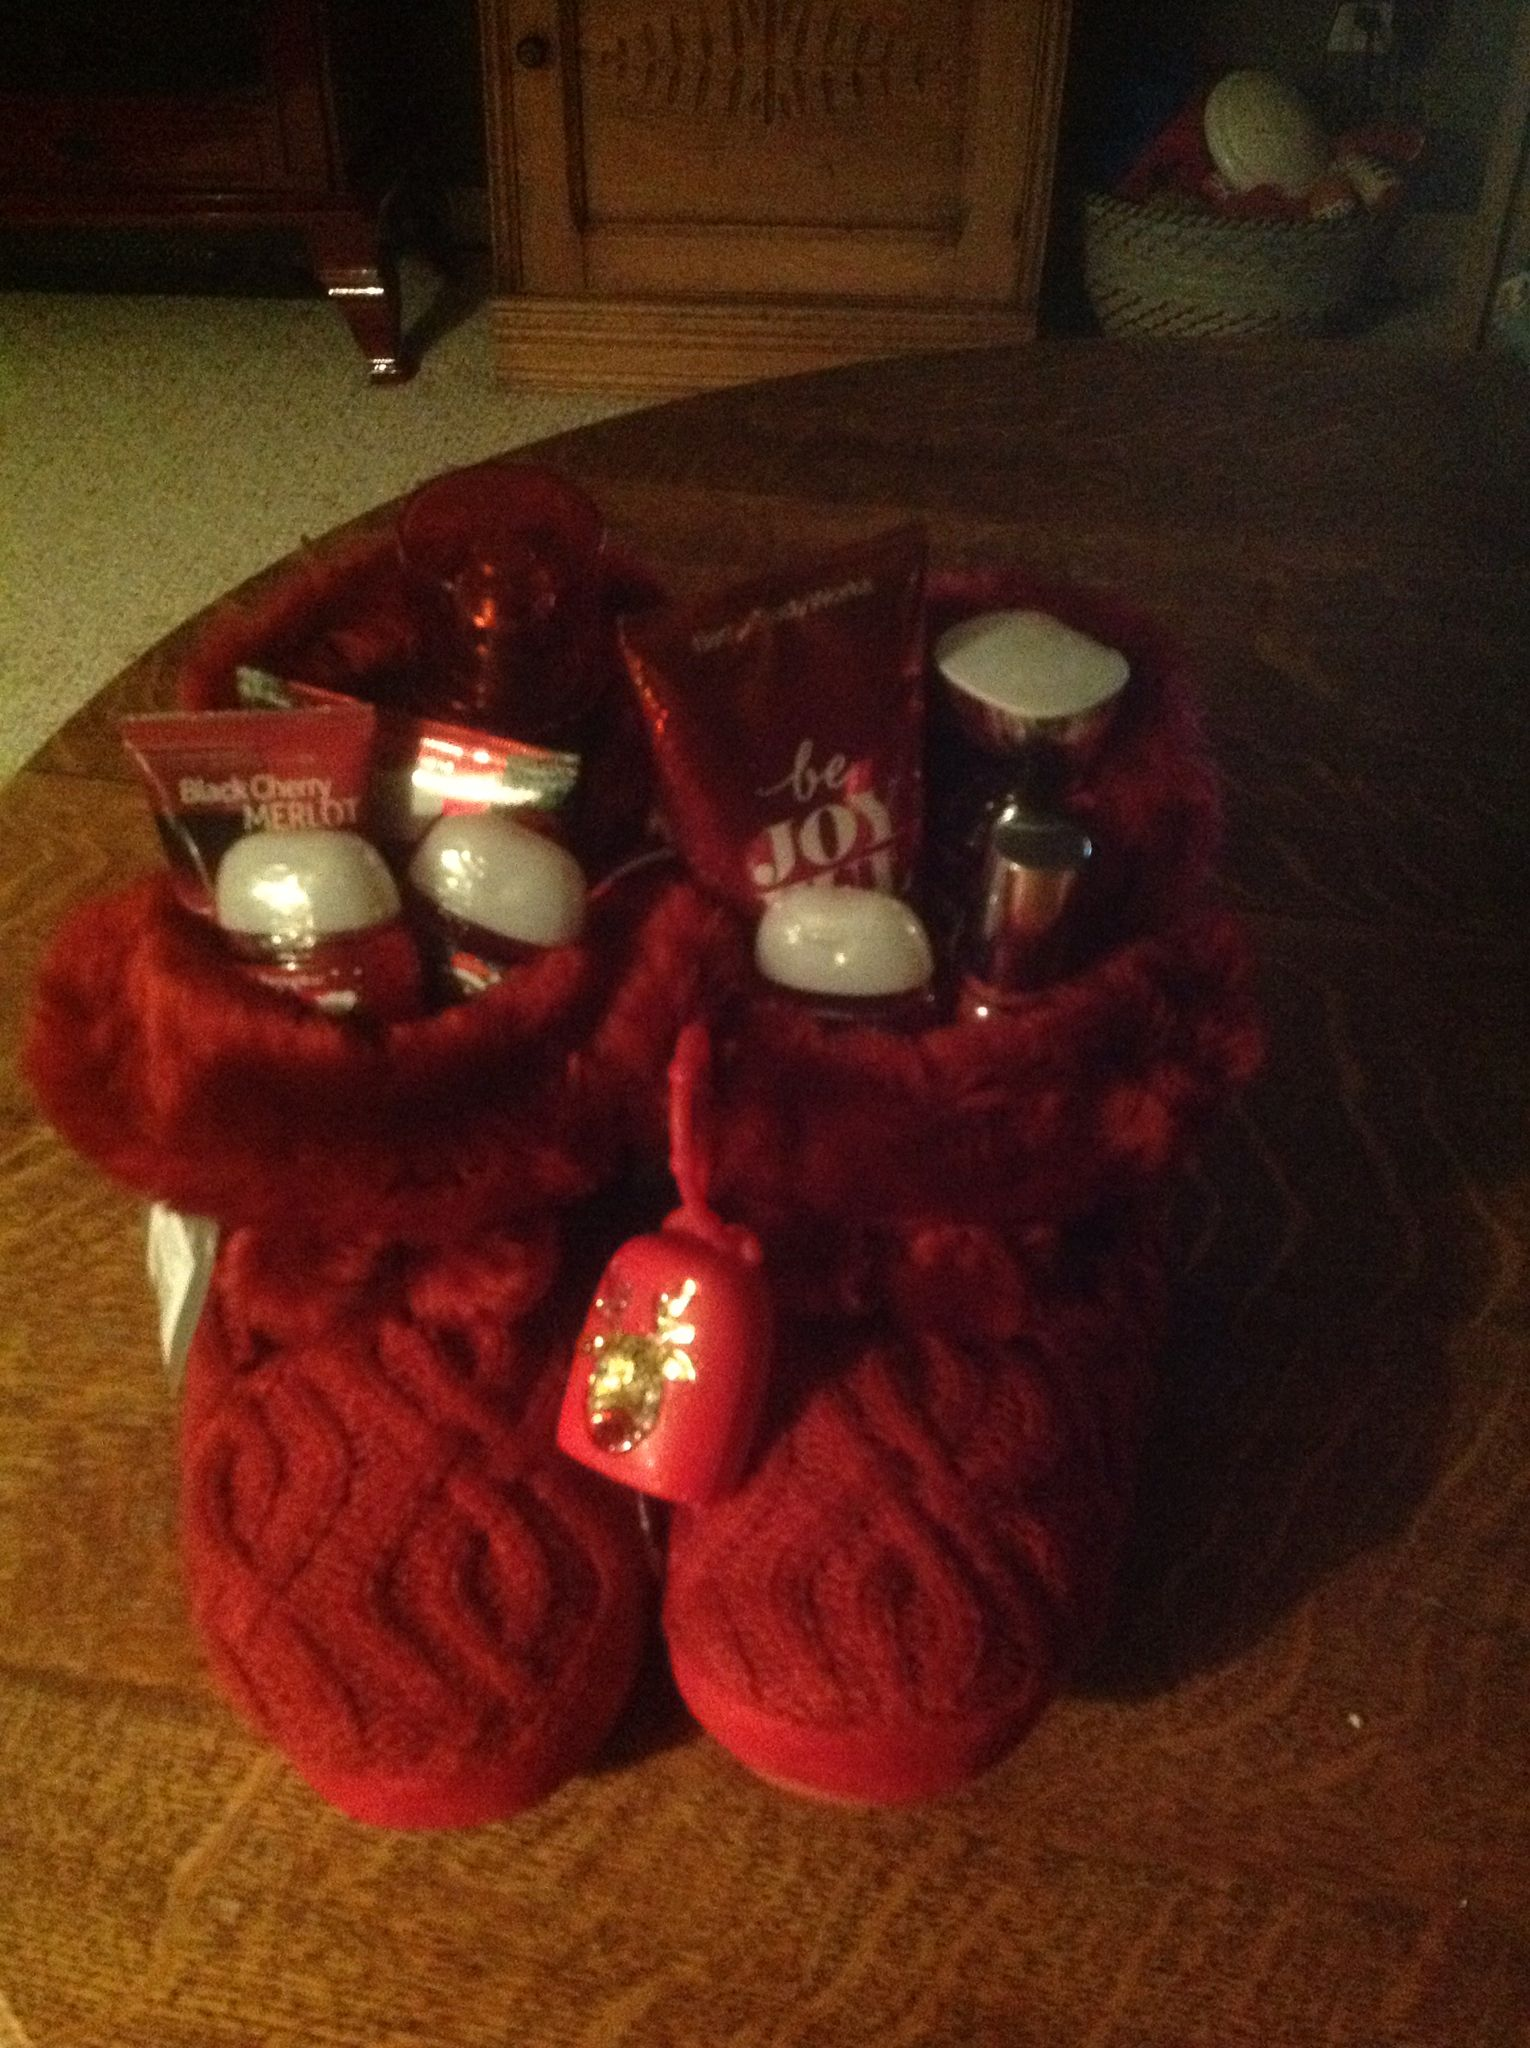 Christmas Present For My Son S Girlfriend Slippers Full Of Bath And Bodywork Christmas Presents For Girls Trending Christmas Presents Trending Christmas Gifts